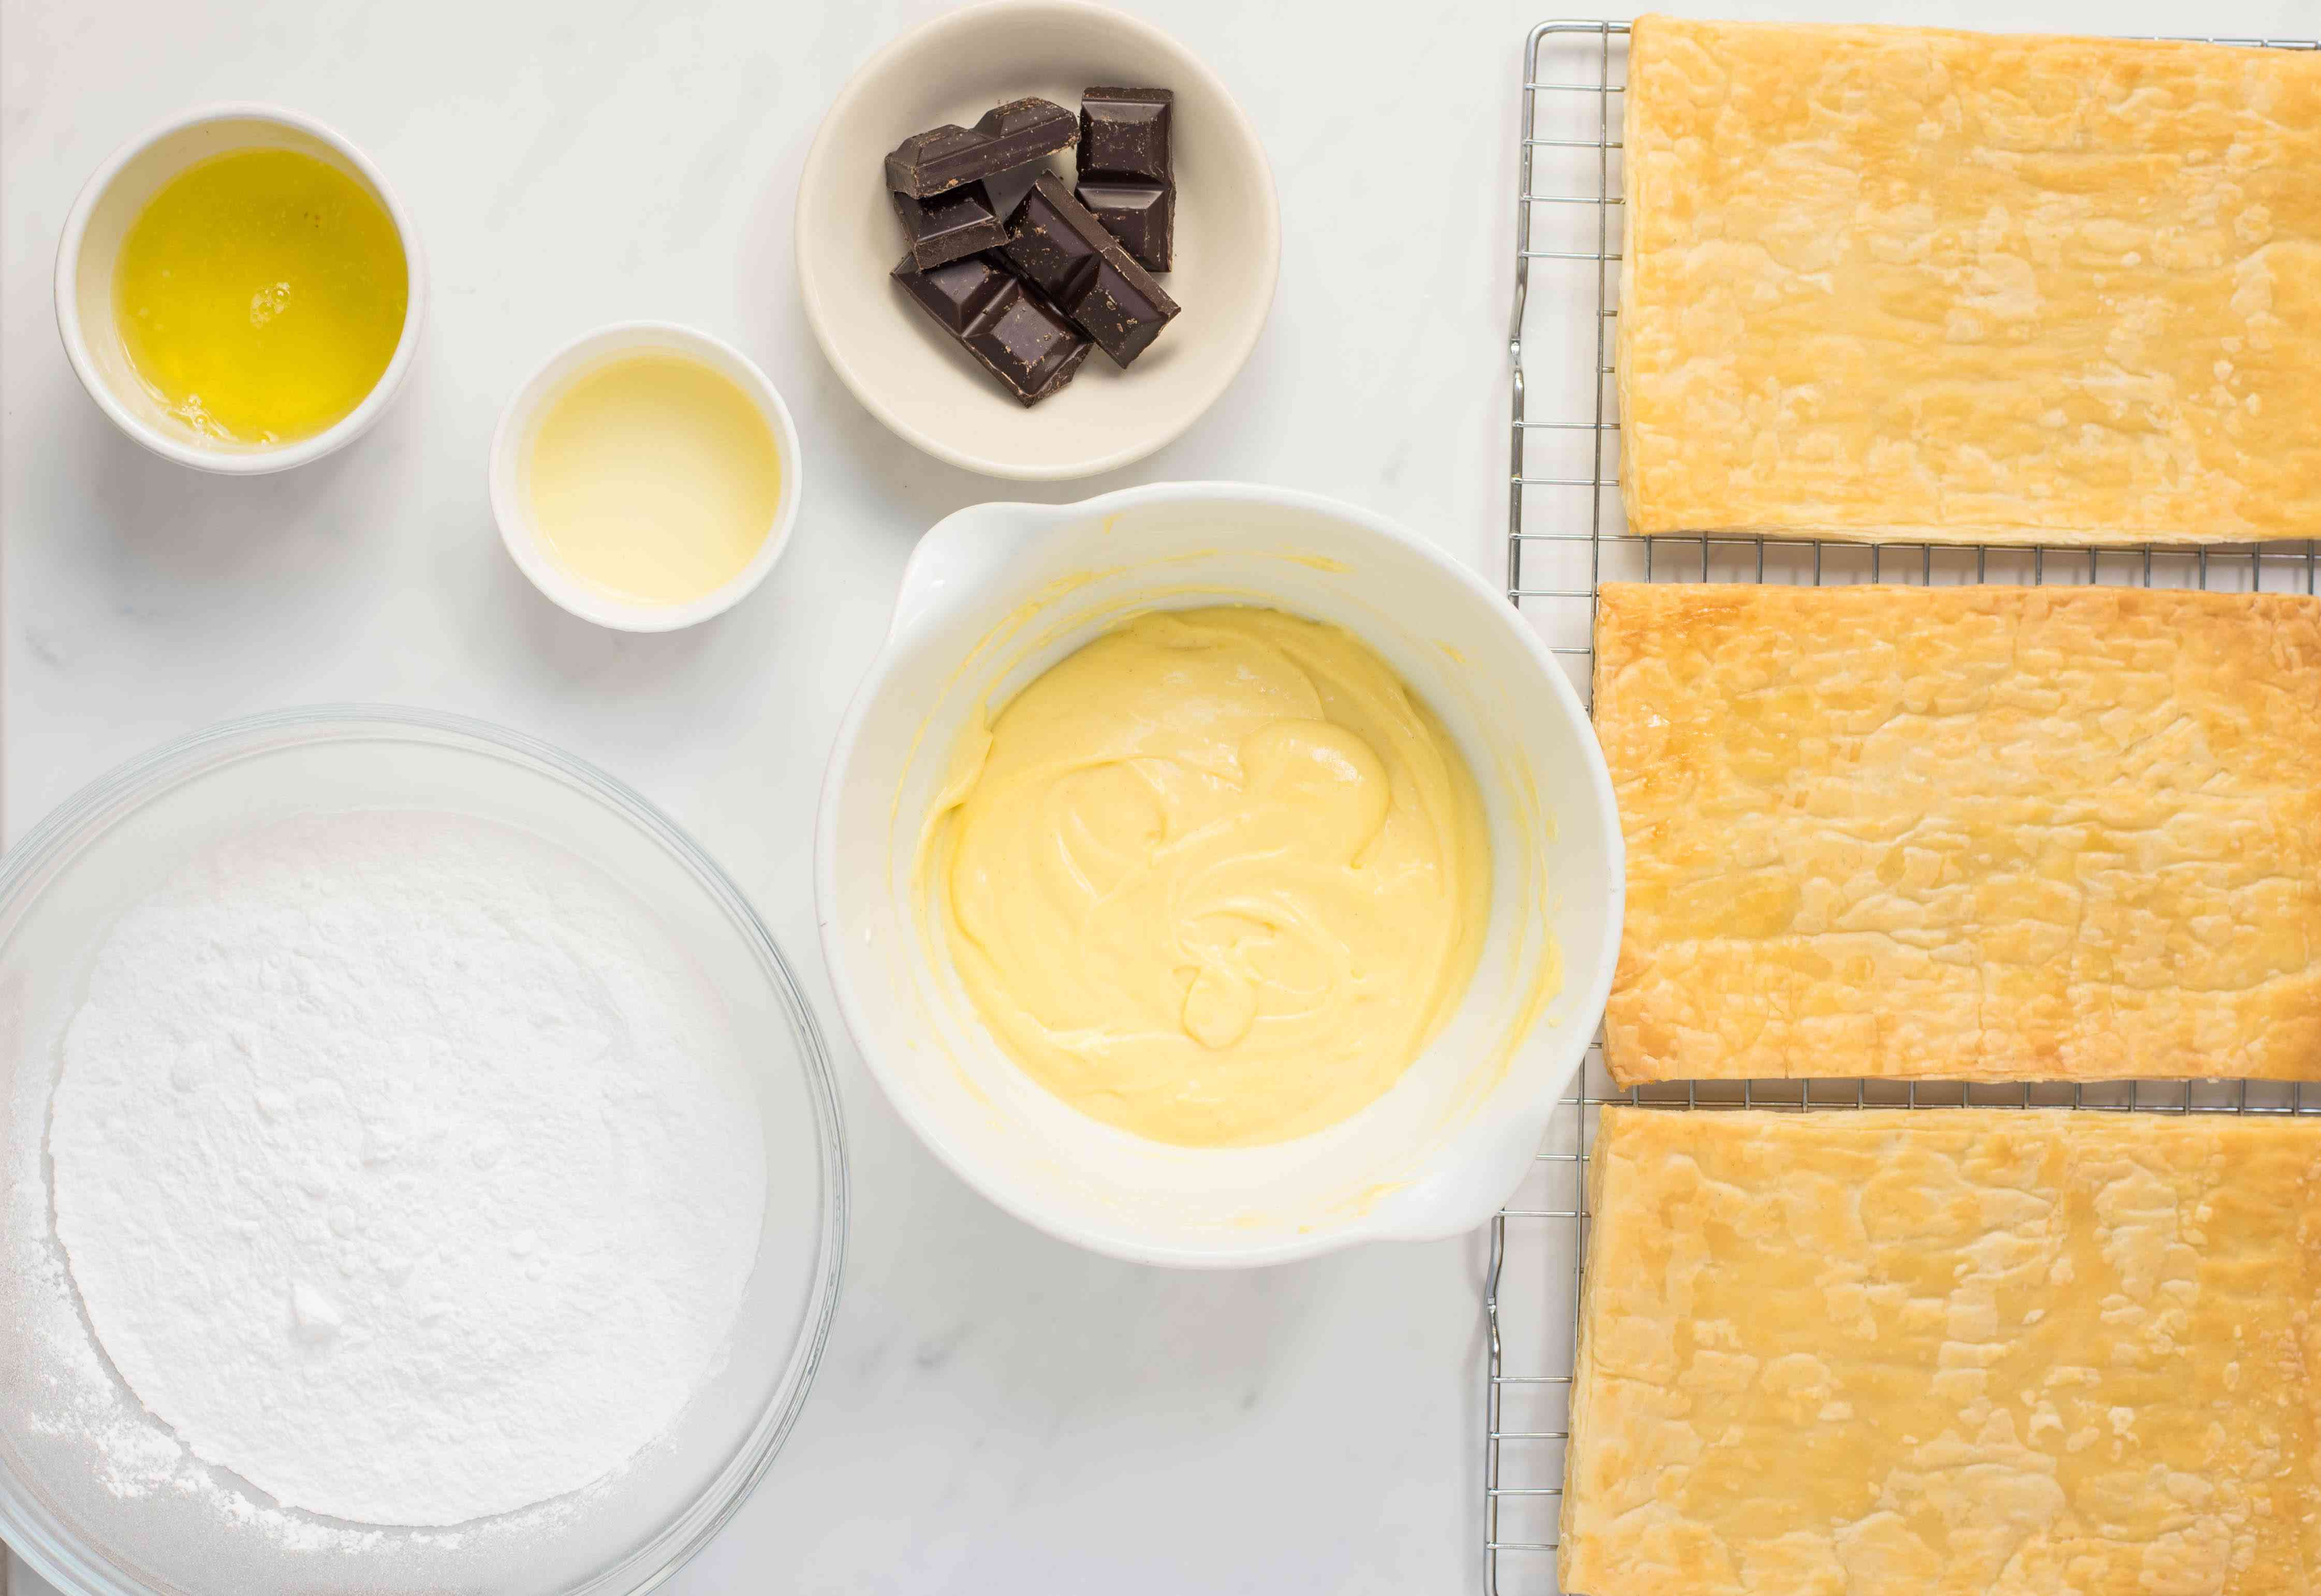 Assemble ingredients for mille-feuille